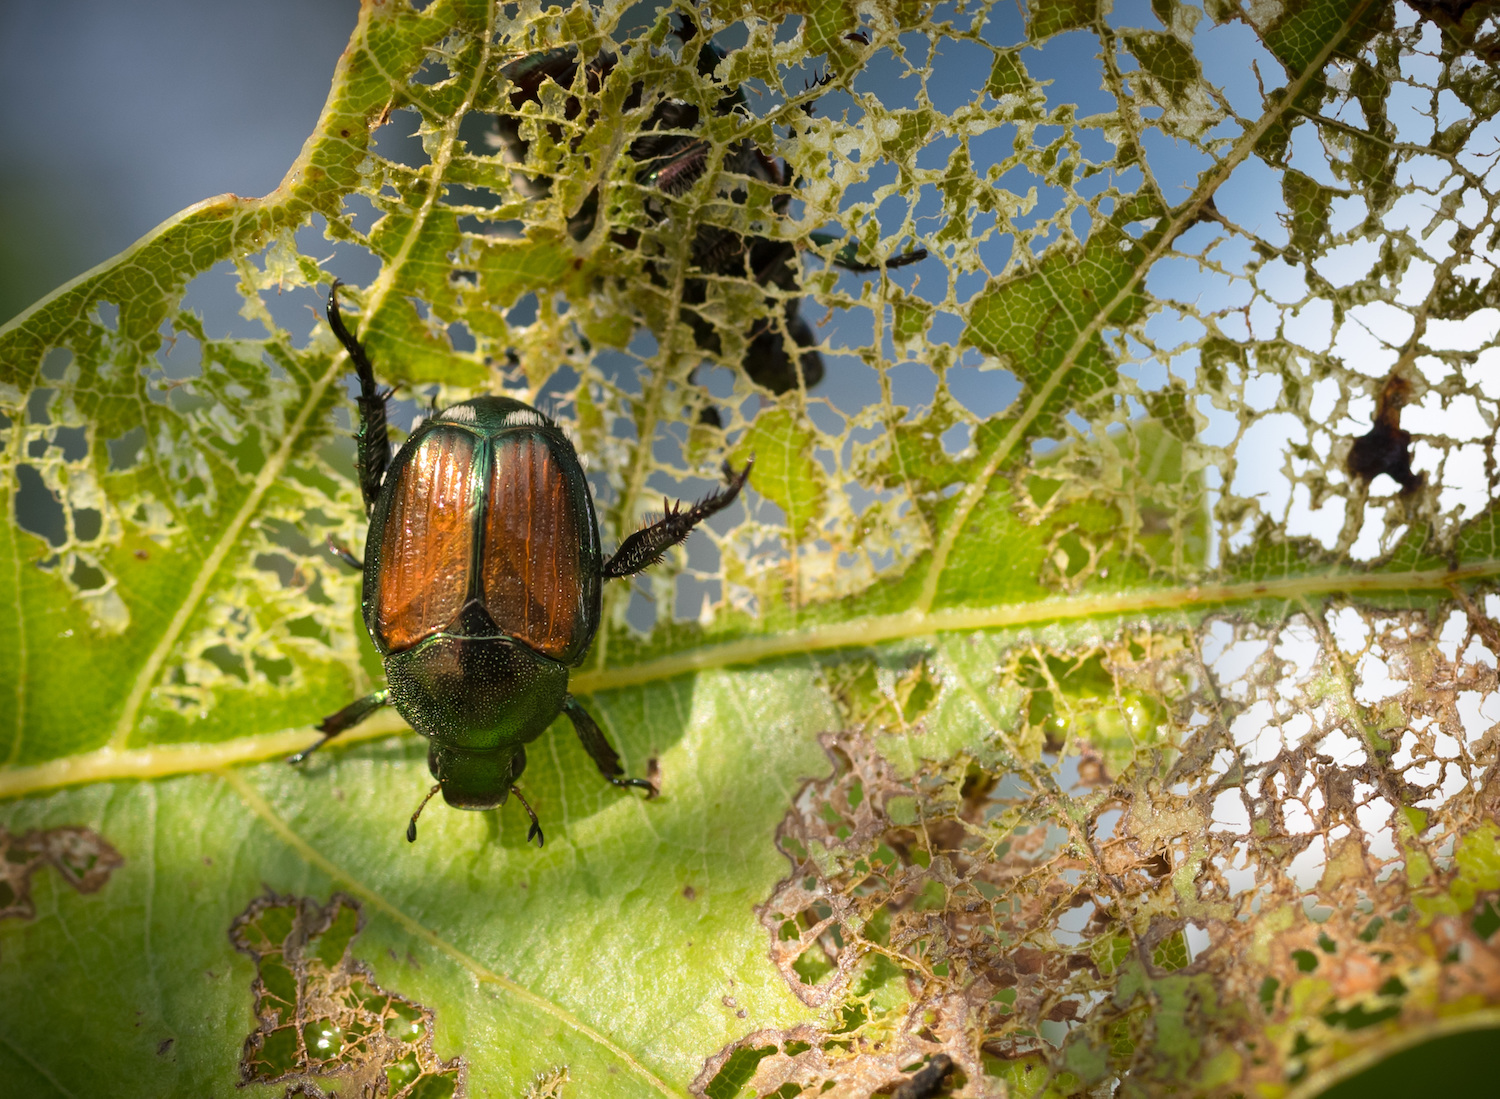 beetle eating a leaf needing shrub care